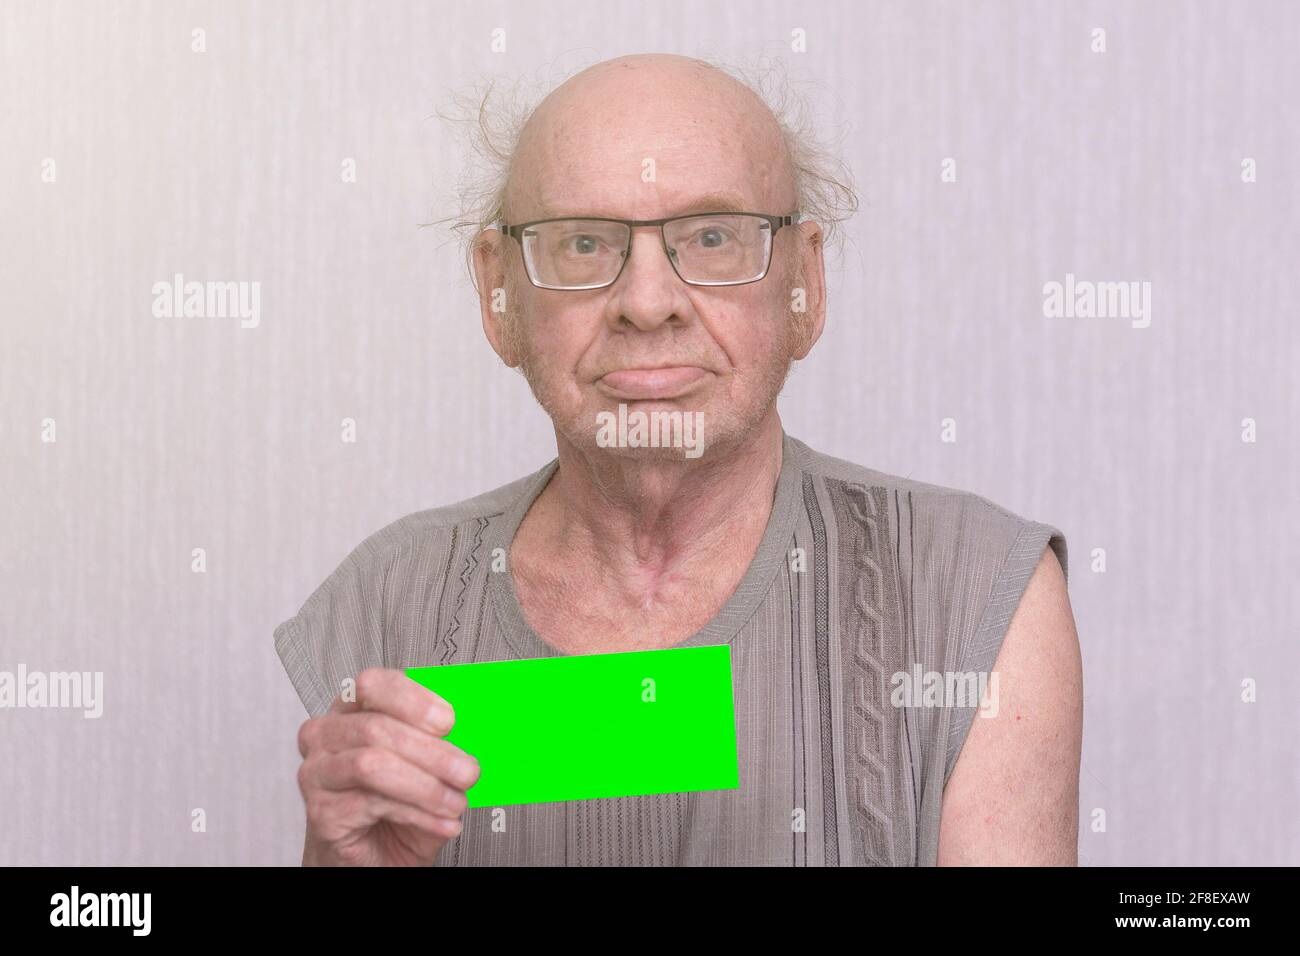 Old retired bald man with eyeglasses in gray shirt is blank in his hand. Stock Photo